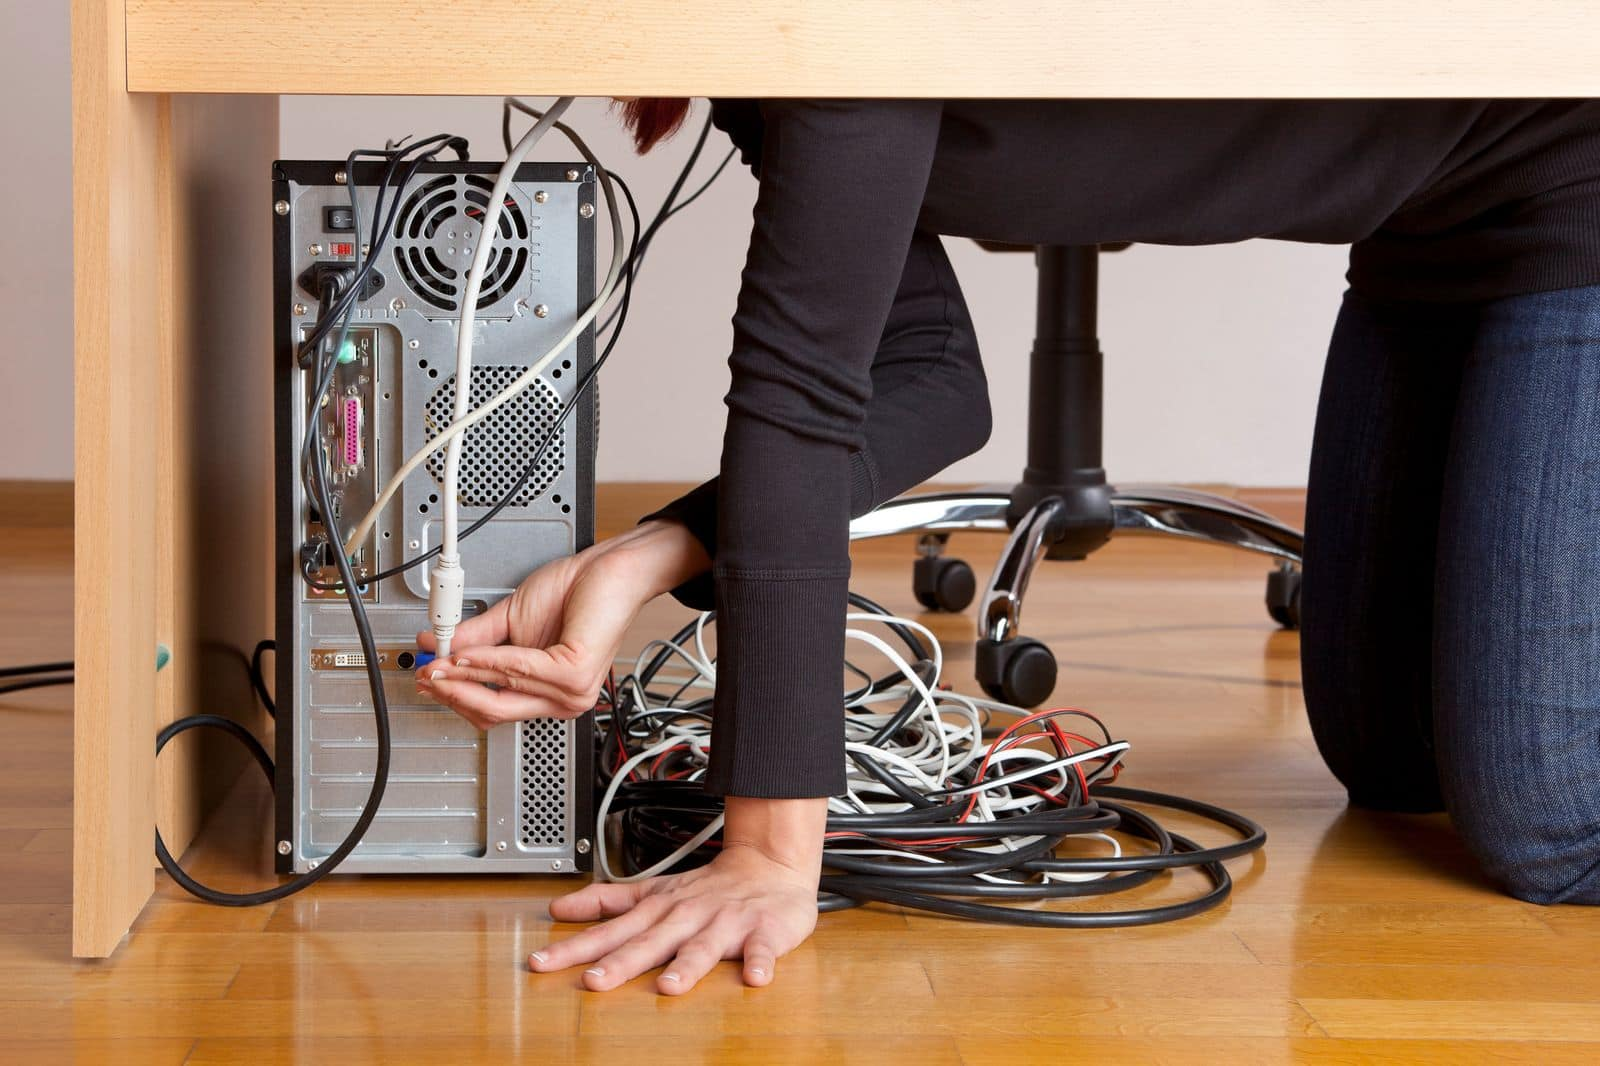 Woman sorting through knotted wires and cables